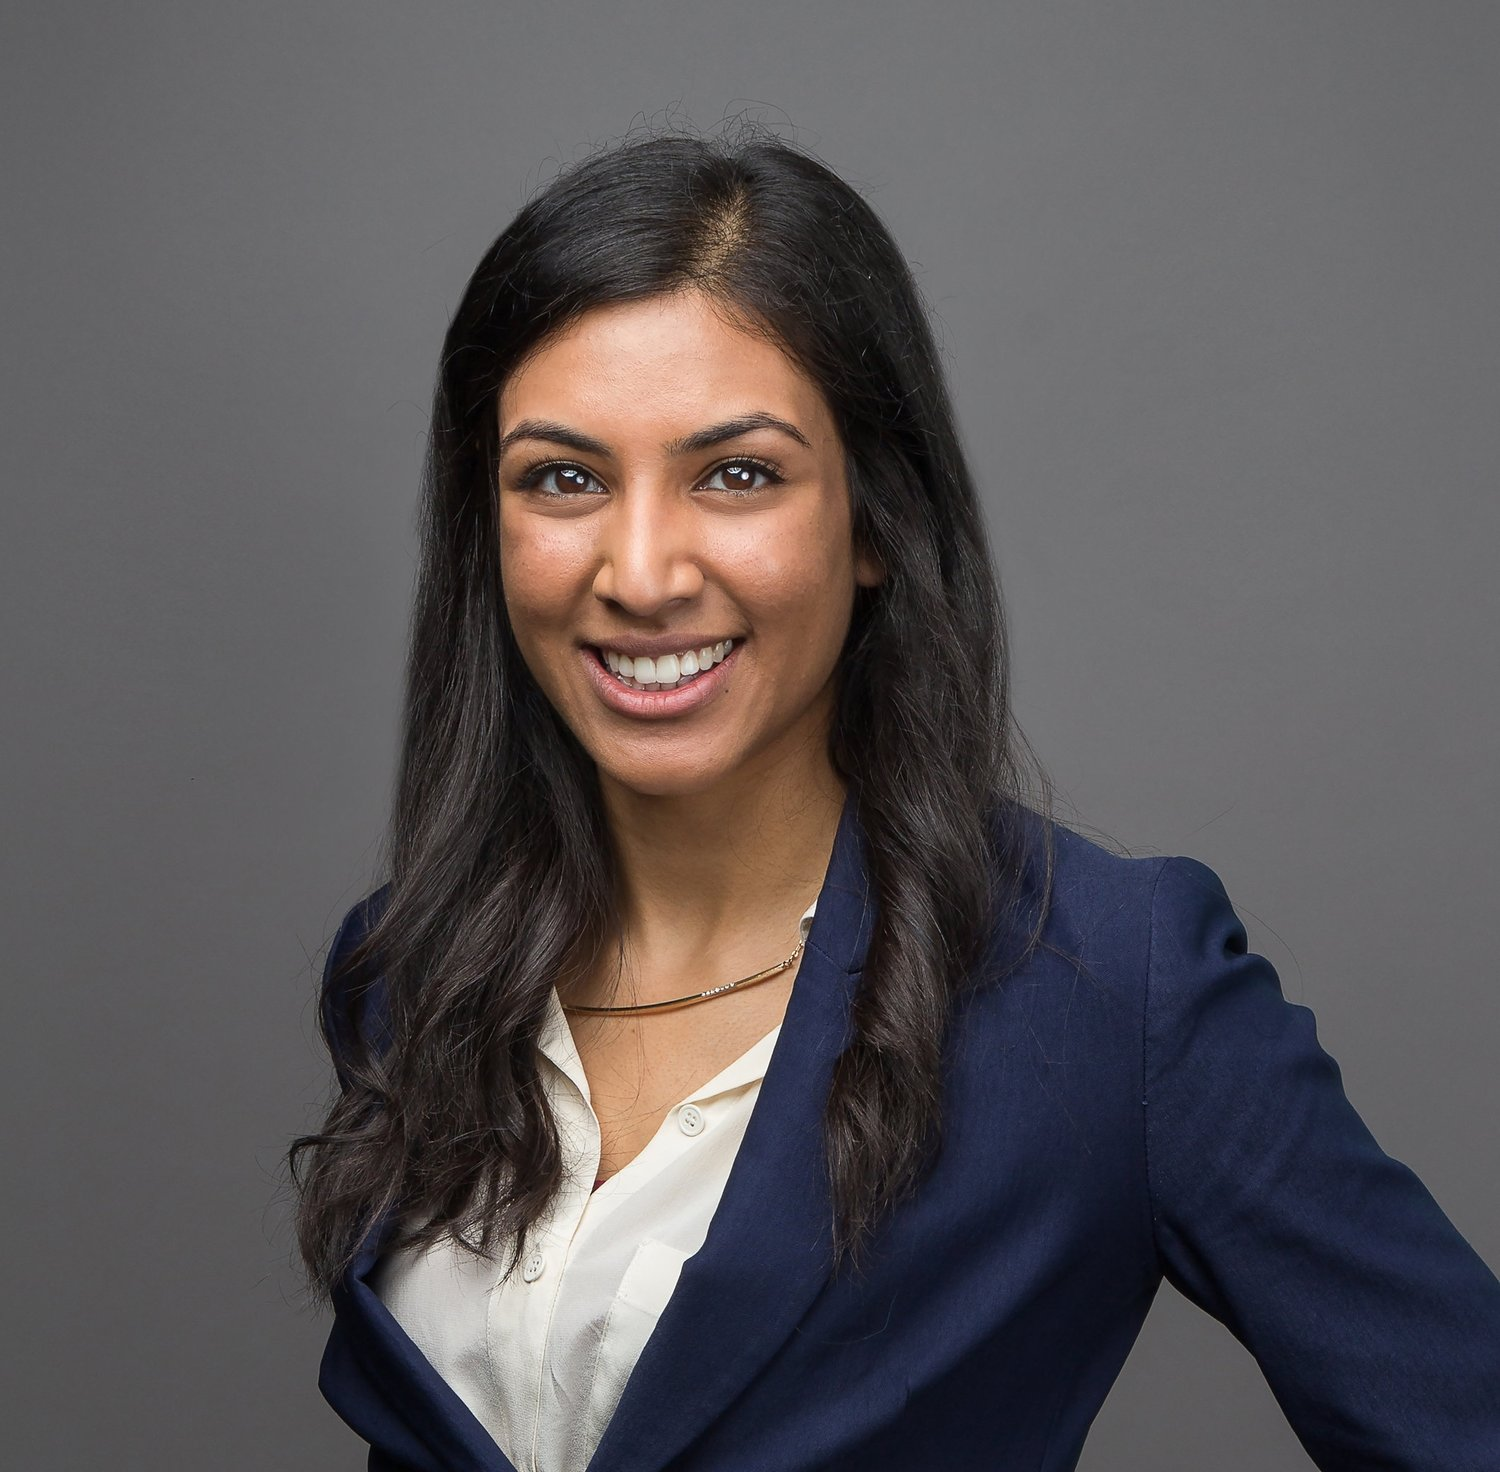 Shivani Chotalia - Project Finance - Shivani is an engineer and financial professional focused on the intersection of clean technologies and social impact. She works with NRStor Inc. to build own and operate first-of-a-kind energy storage projects, including Canada's first commercial flywheel energy storage facility and the first fuel-free compressed air energy storage (CAES) facility in the world. Shivani plays a lead role in working with remote, off-grid Indigenous communities to build partnerships and projects reducing dependence on diesel fuel while supporting local economic growth.